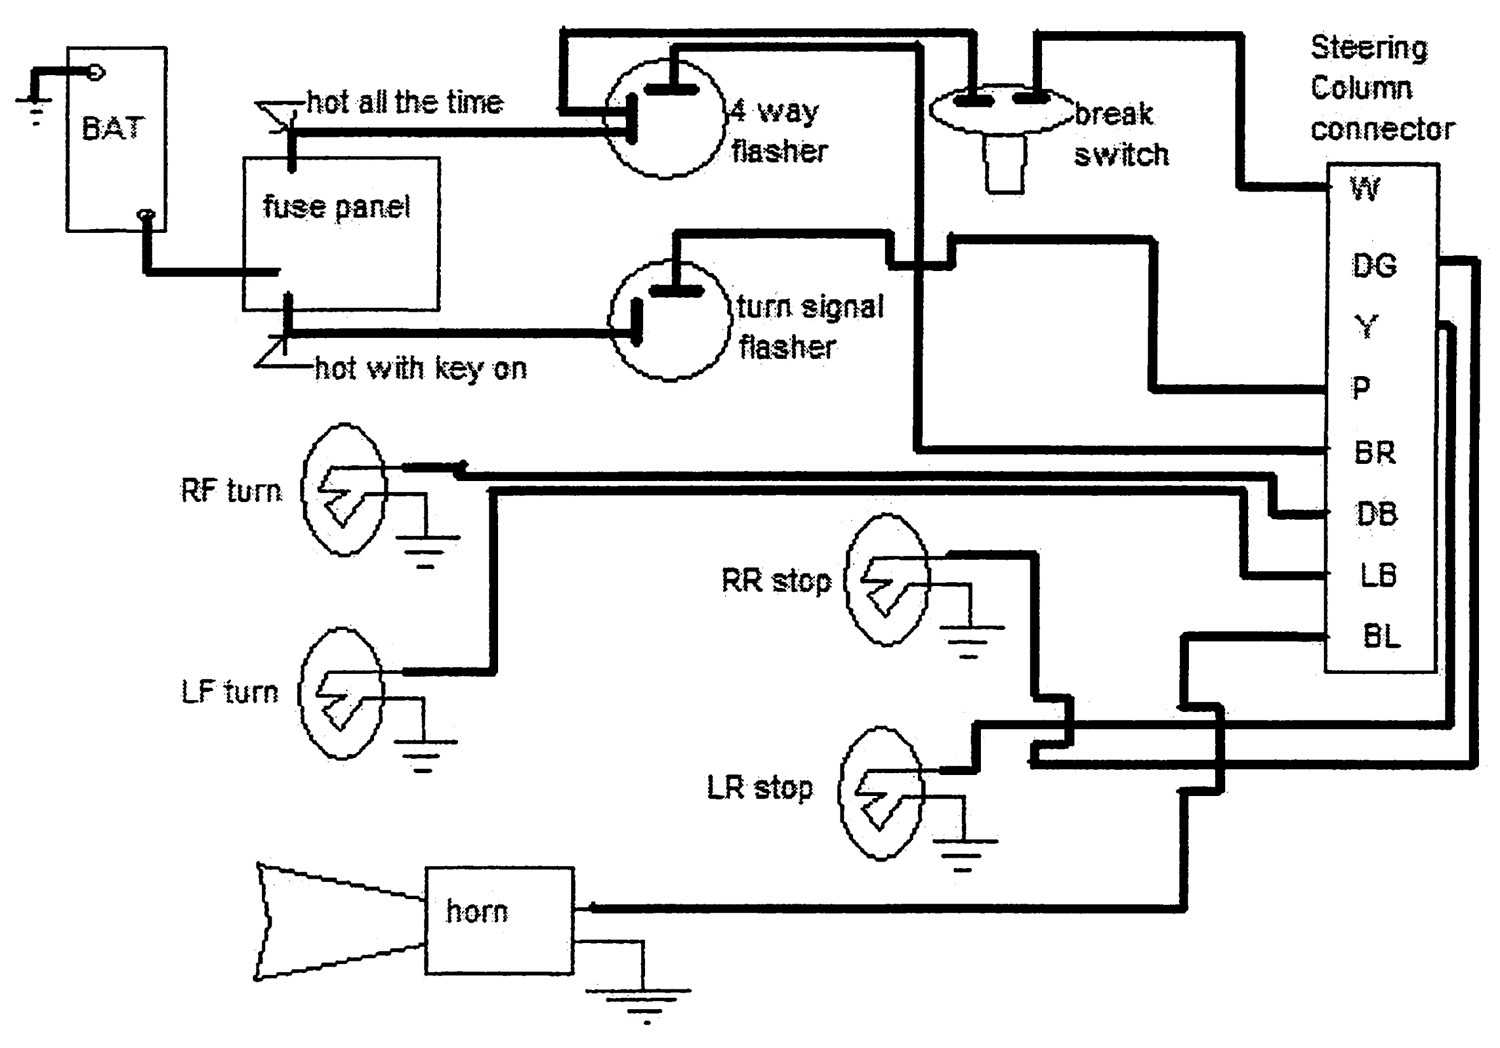 Turn Signal Schematic | Wiring Liry on wall switch diagram, switch starter diagram, switch battery diagram, switch socket diagram, switch outlets diagram, switch circuit diagram, electrical outlets diagram, switch lights, relay switch diagram, 3-way switch diagram, network switch diagram, rocker switch diagram,